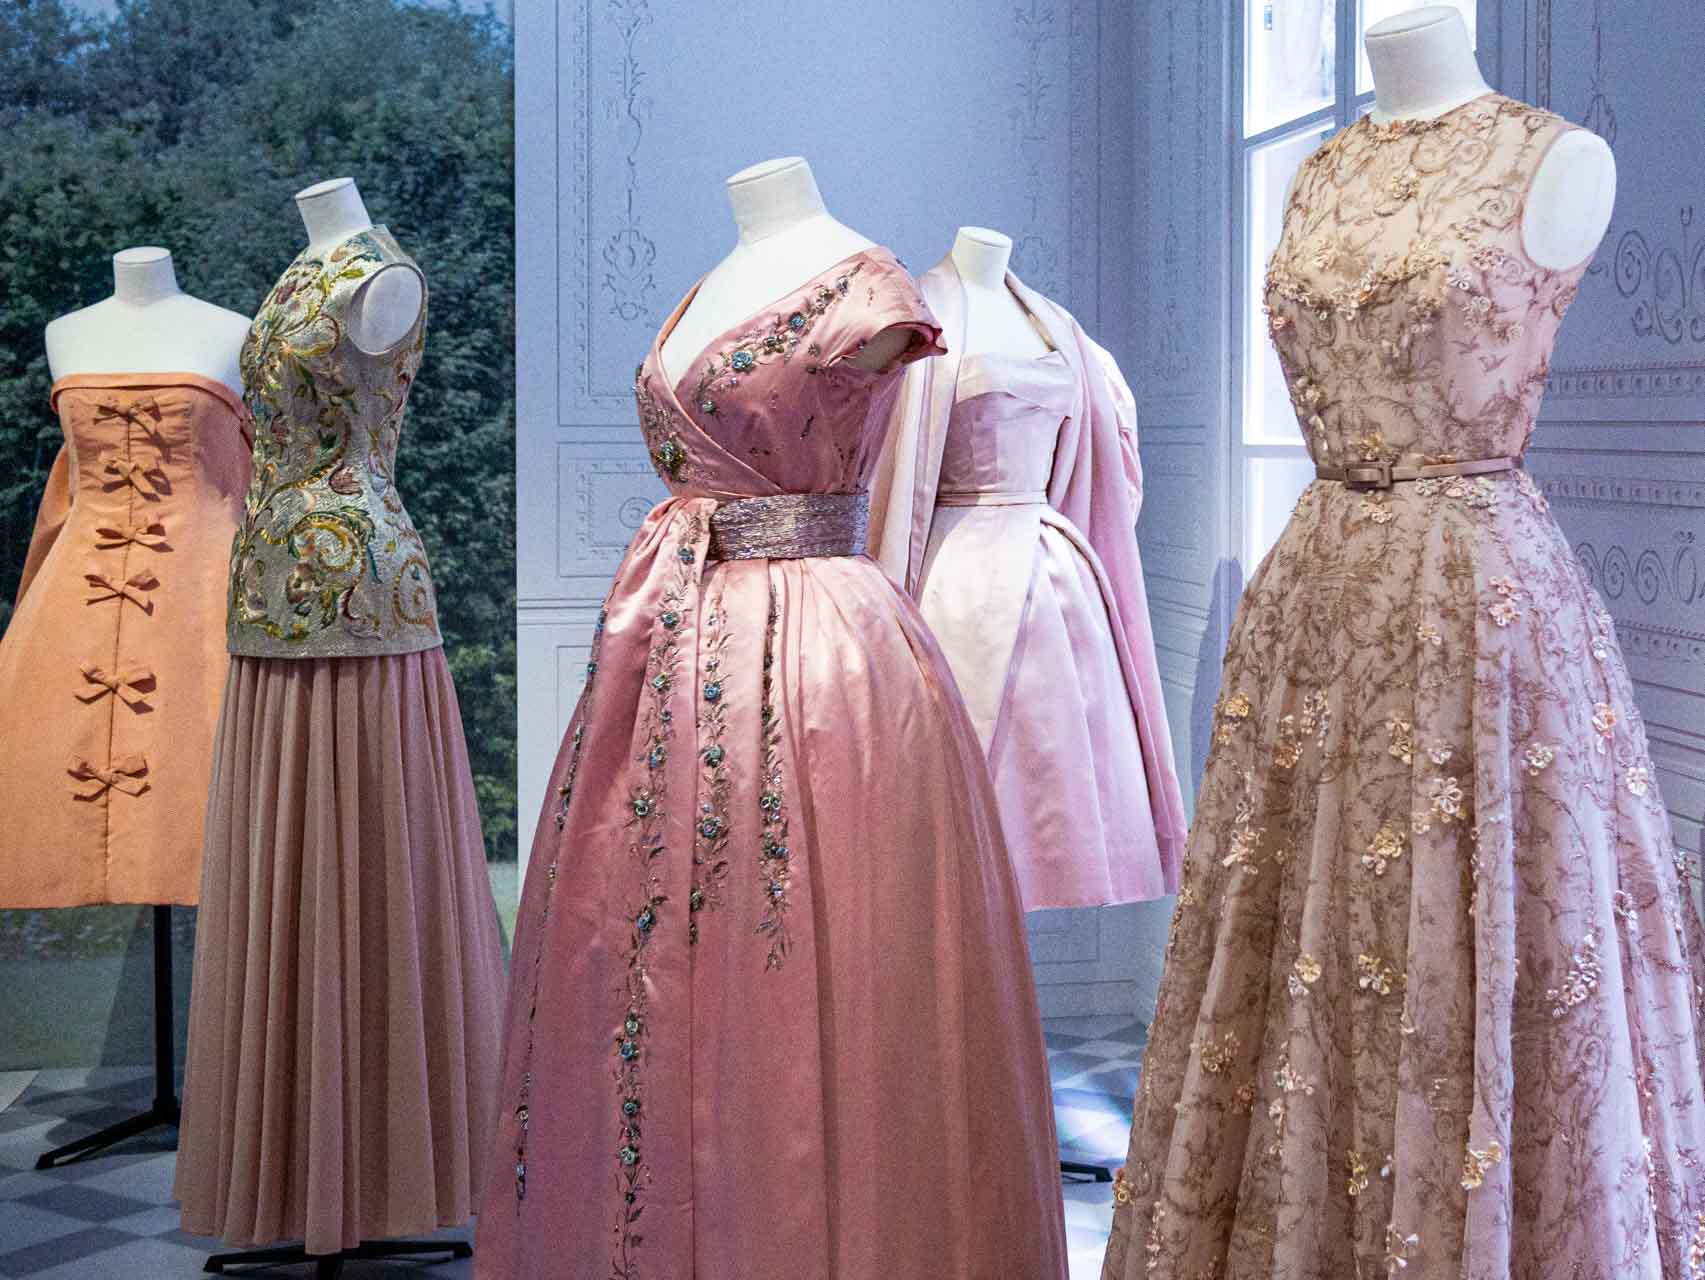 Christian Dior: Designer of Dreams. The Cutting Class. Image 1.